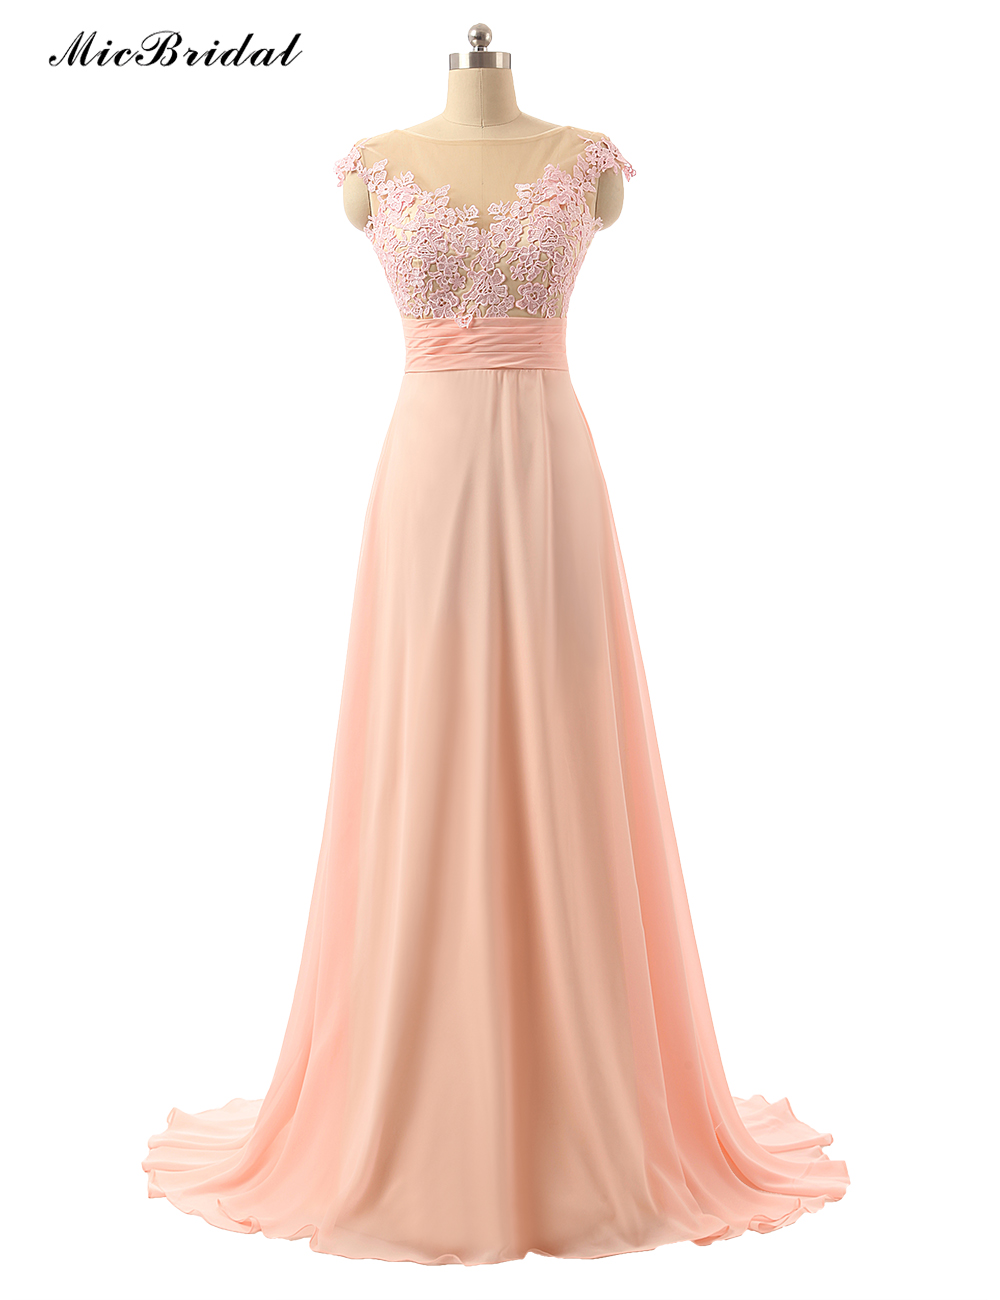 Micbridal cheap a line blush bridesmaid dress 2016 long for Cheap formal dresses for wedding guests